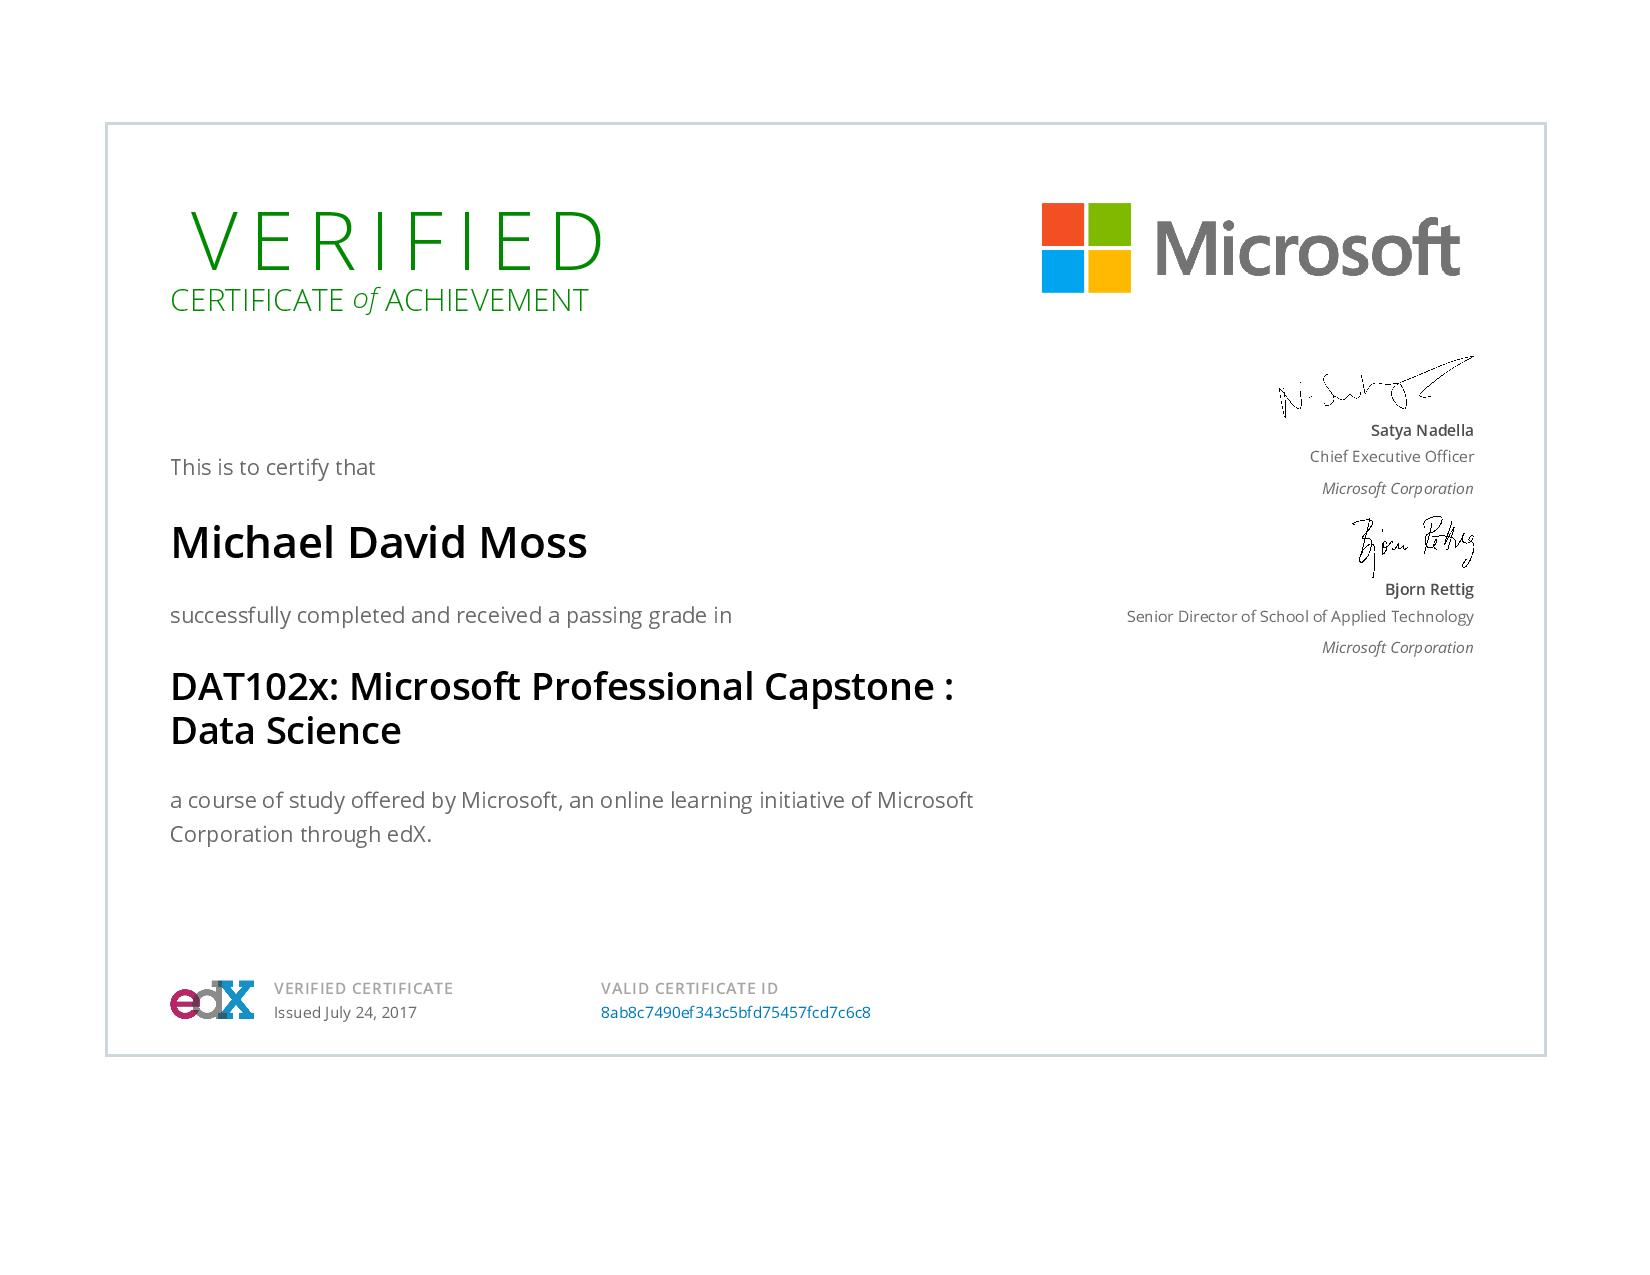 Microsoft Professional Capstone: Data Science Certificate